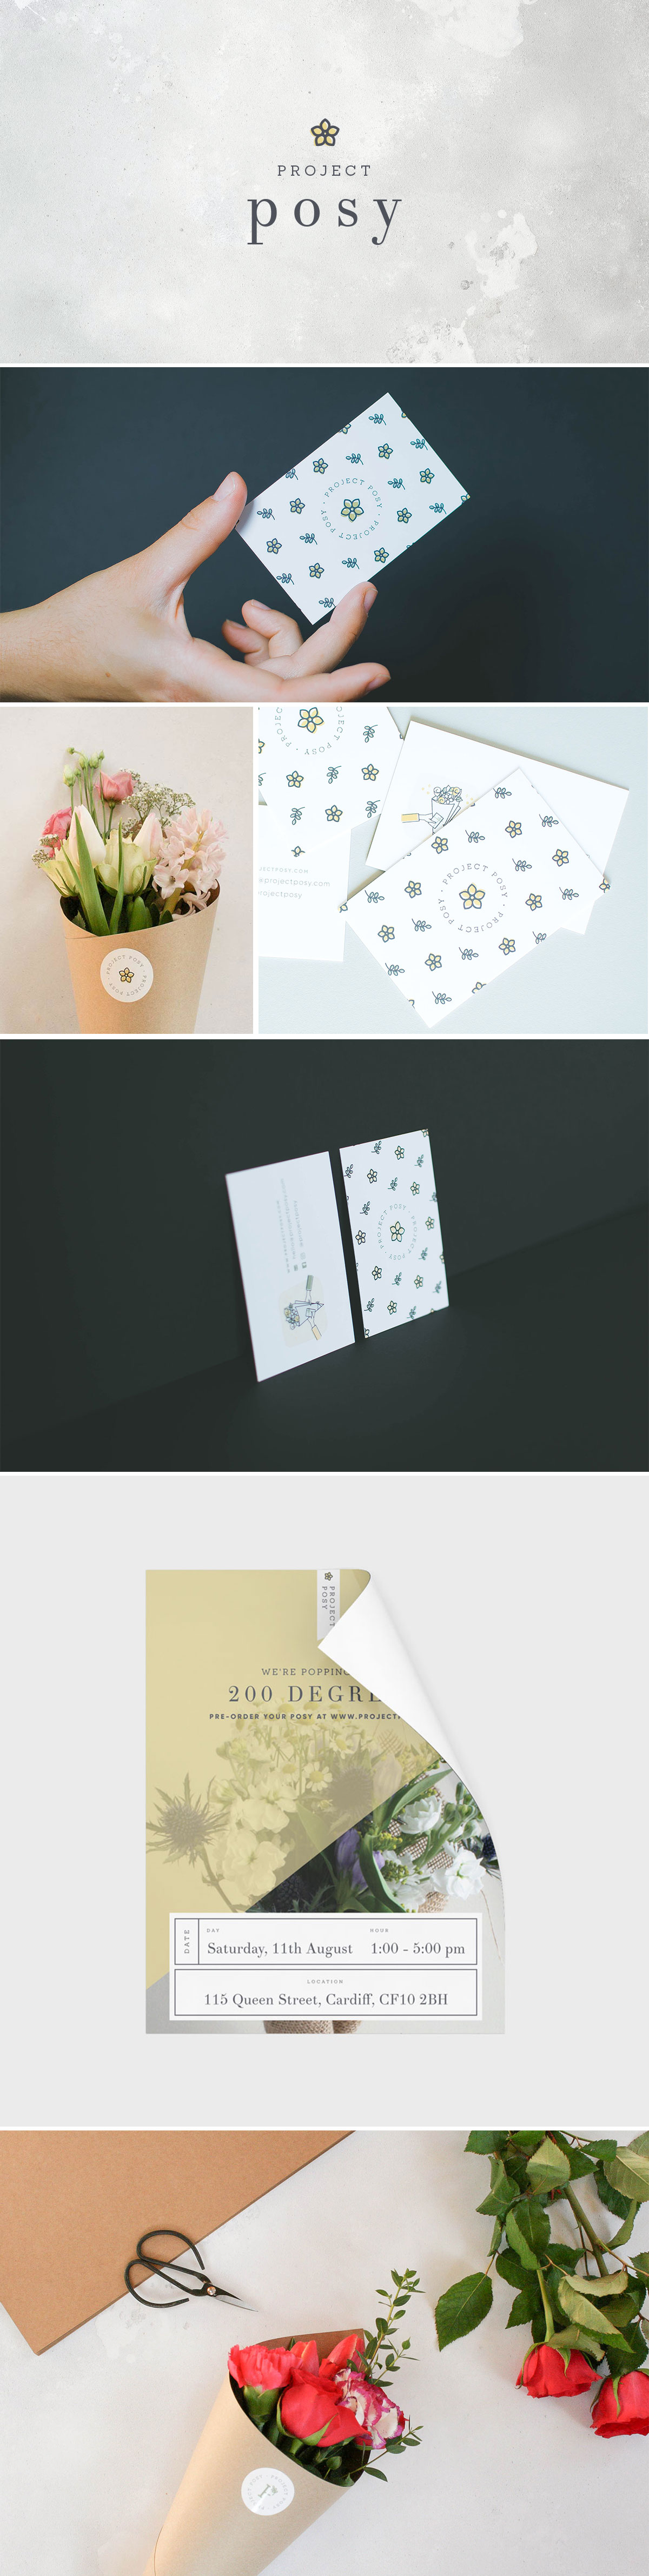 Miel Café Design Portfolio: Minimal floral branding and branded stationery for Project Posy flower delivery service